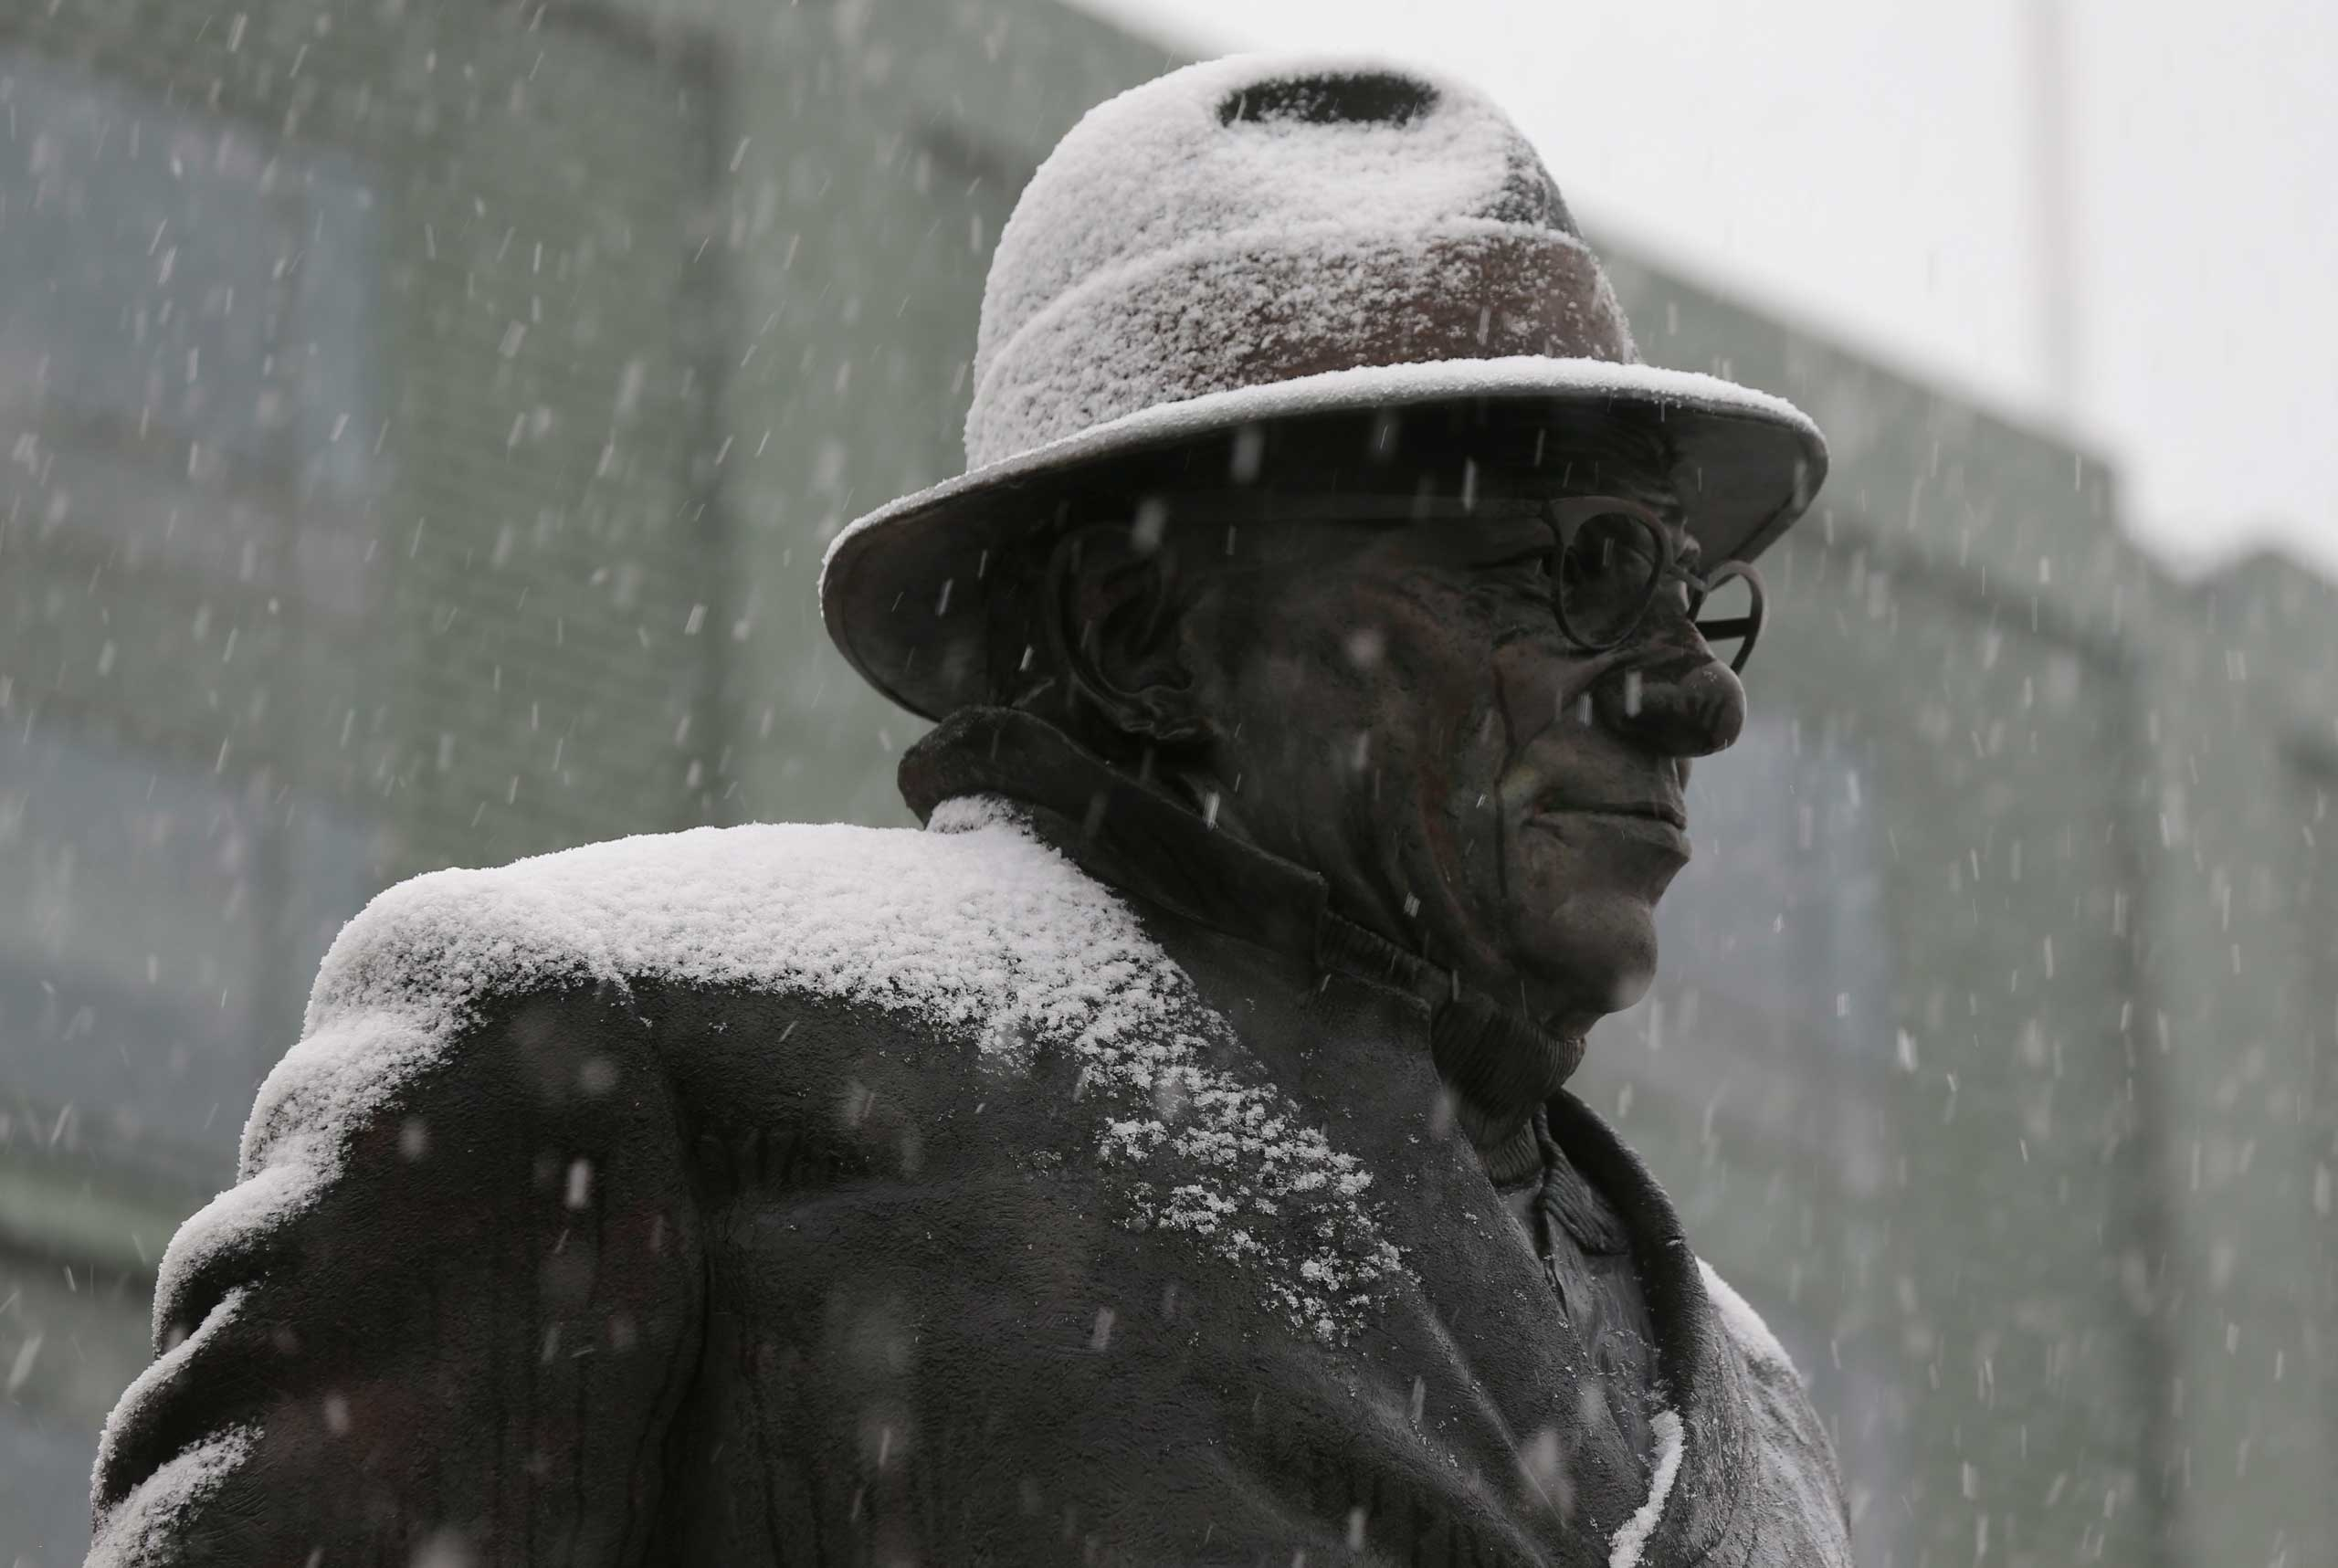 Snow falls on the Vince Lombardi statue at Lambeau Field in Green Bay, Wis. on Nov. 10, 2014.